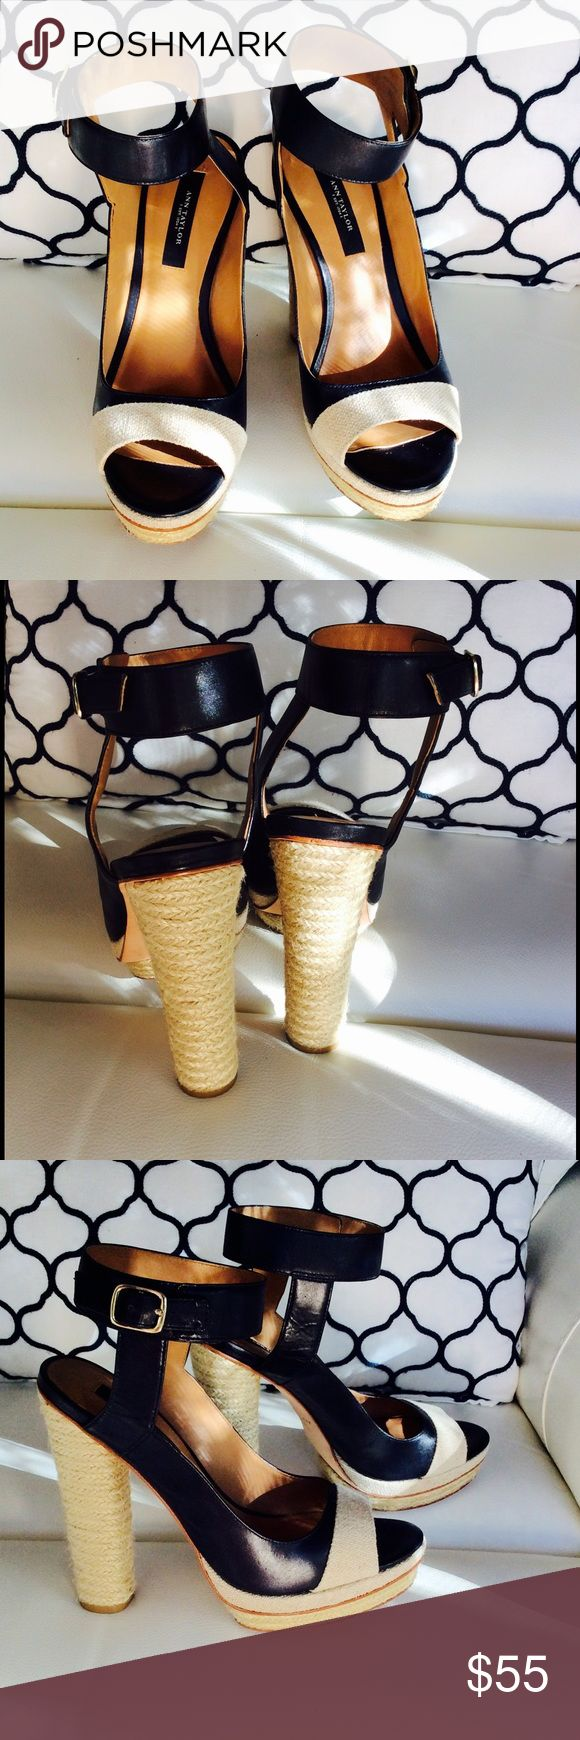 🎁Ann Taylor espadrilles heels Black and Beige 🎁 Ann Taylor espadrilles heels Black & beige espadrilles heels. 3 1/2 heel. Slight platform in front makes them comfortable Ann Taylor Shoes Heels in perfect condition check pics 0134210567 Ann Taylor Shoes Platforms